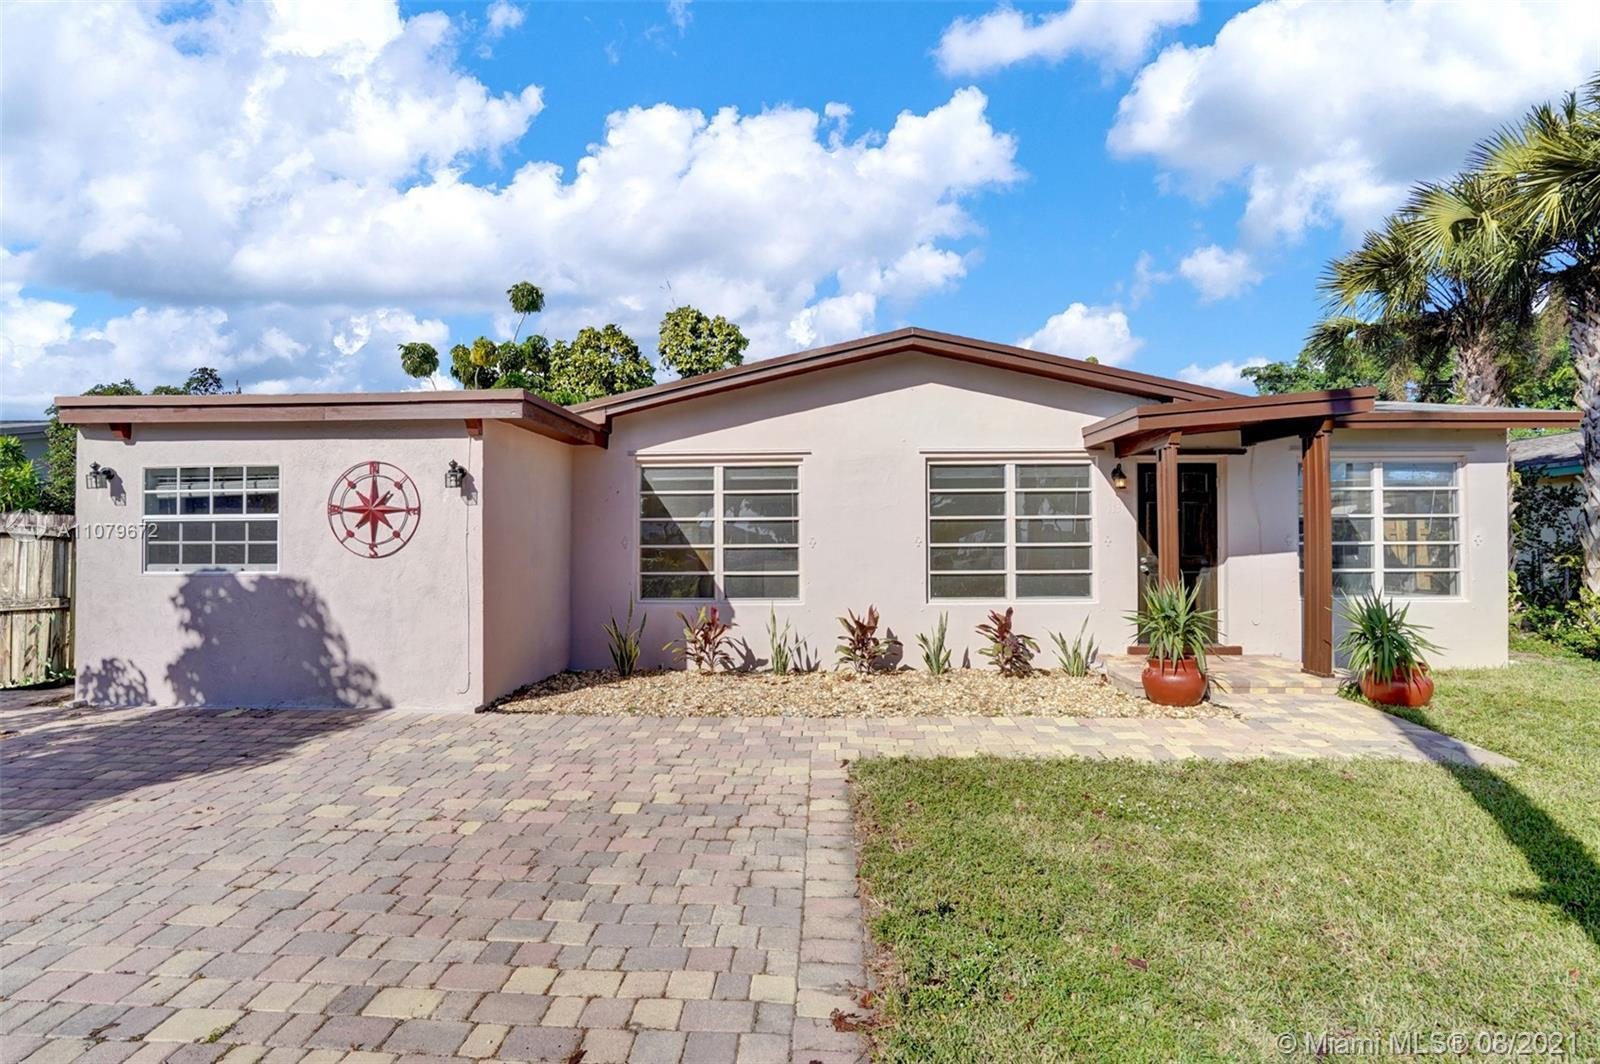 Charming 3 bedroom/ 2 bath+bonus room home East of 95 in Fort Lauderdale! Shingle Roof is from 2011